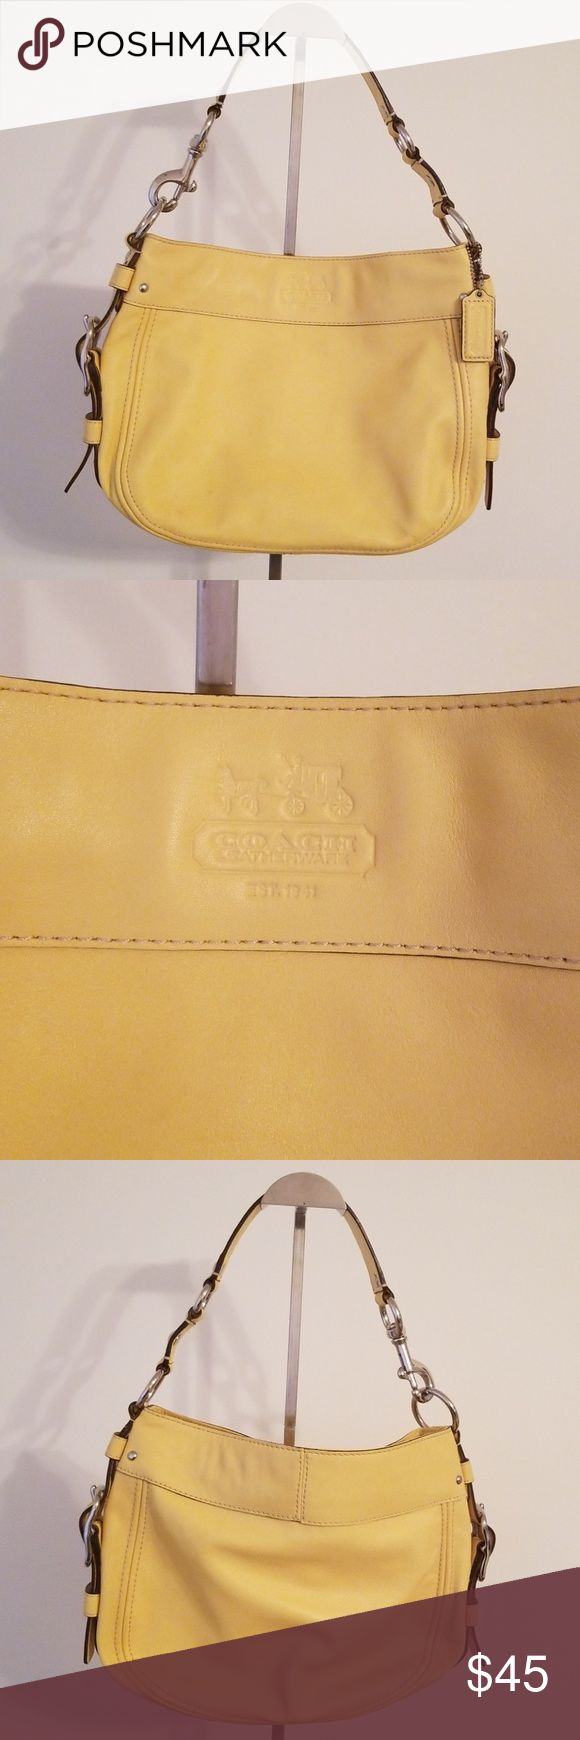 COACH Shoulder Bag Genuine Yellow Leather Authentic Coach Shoulder Bag 10″ x 13.5″ 9″ Drop Very Soft Leather Tan Lining  Top Zipper Closure  One Insid…